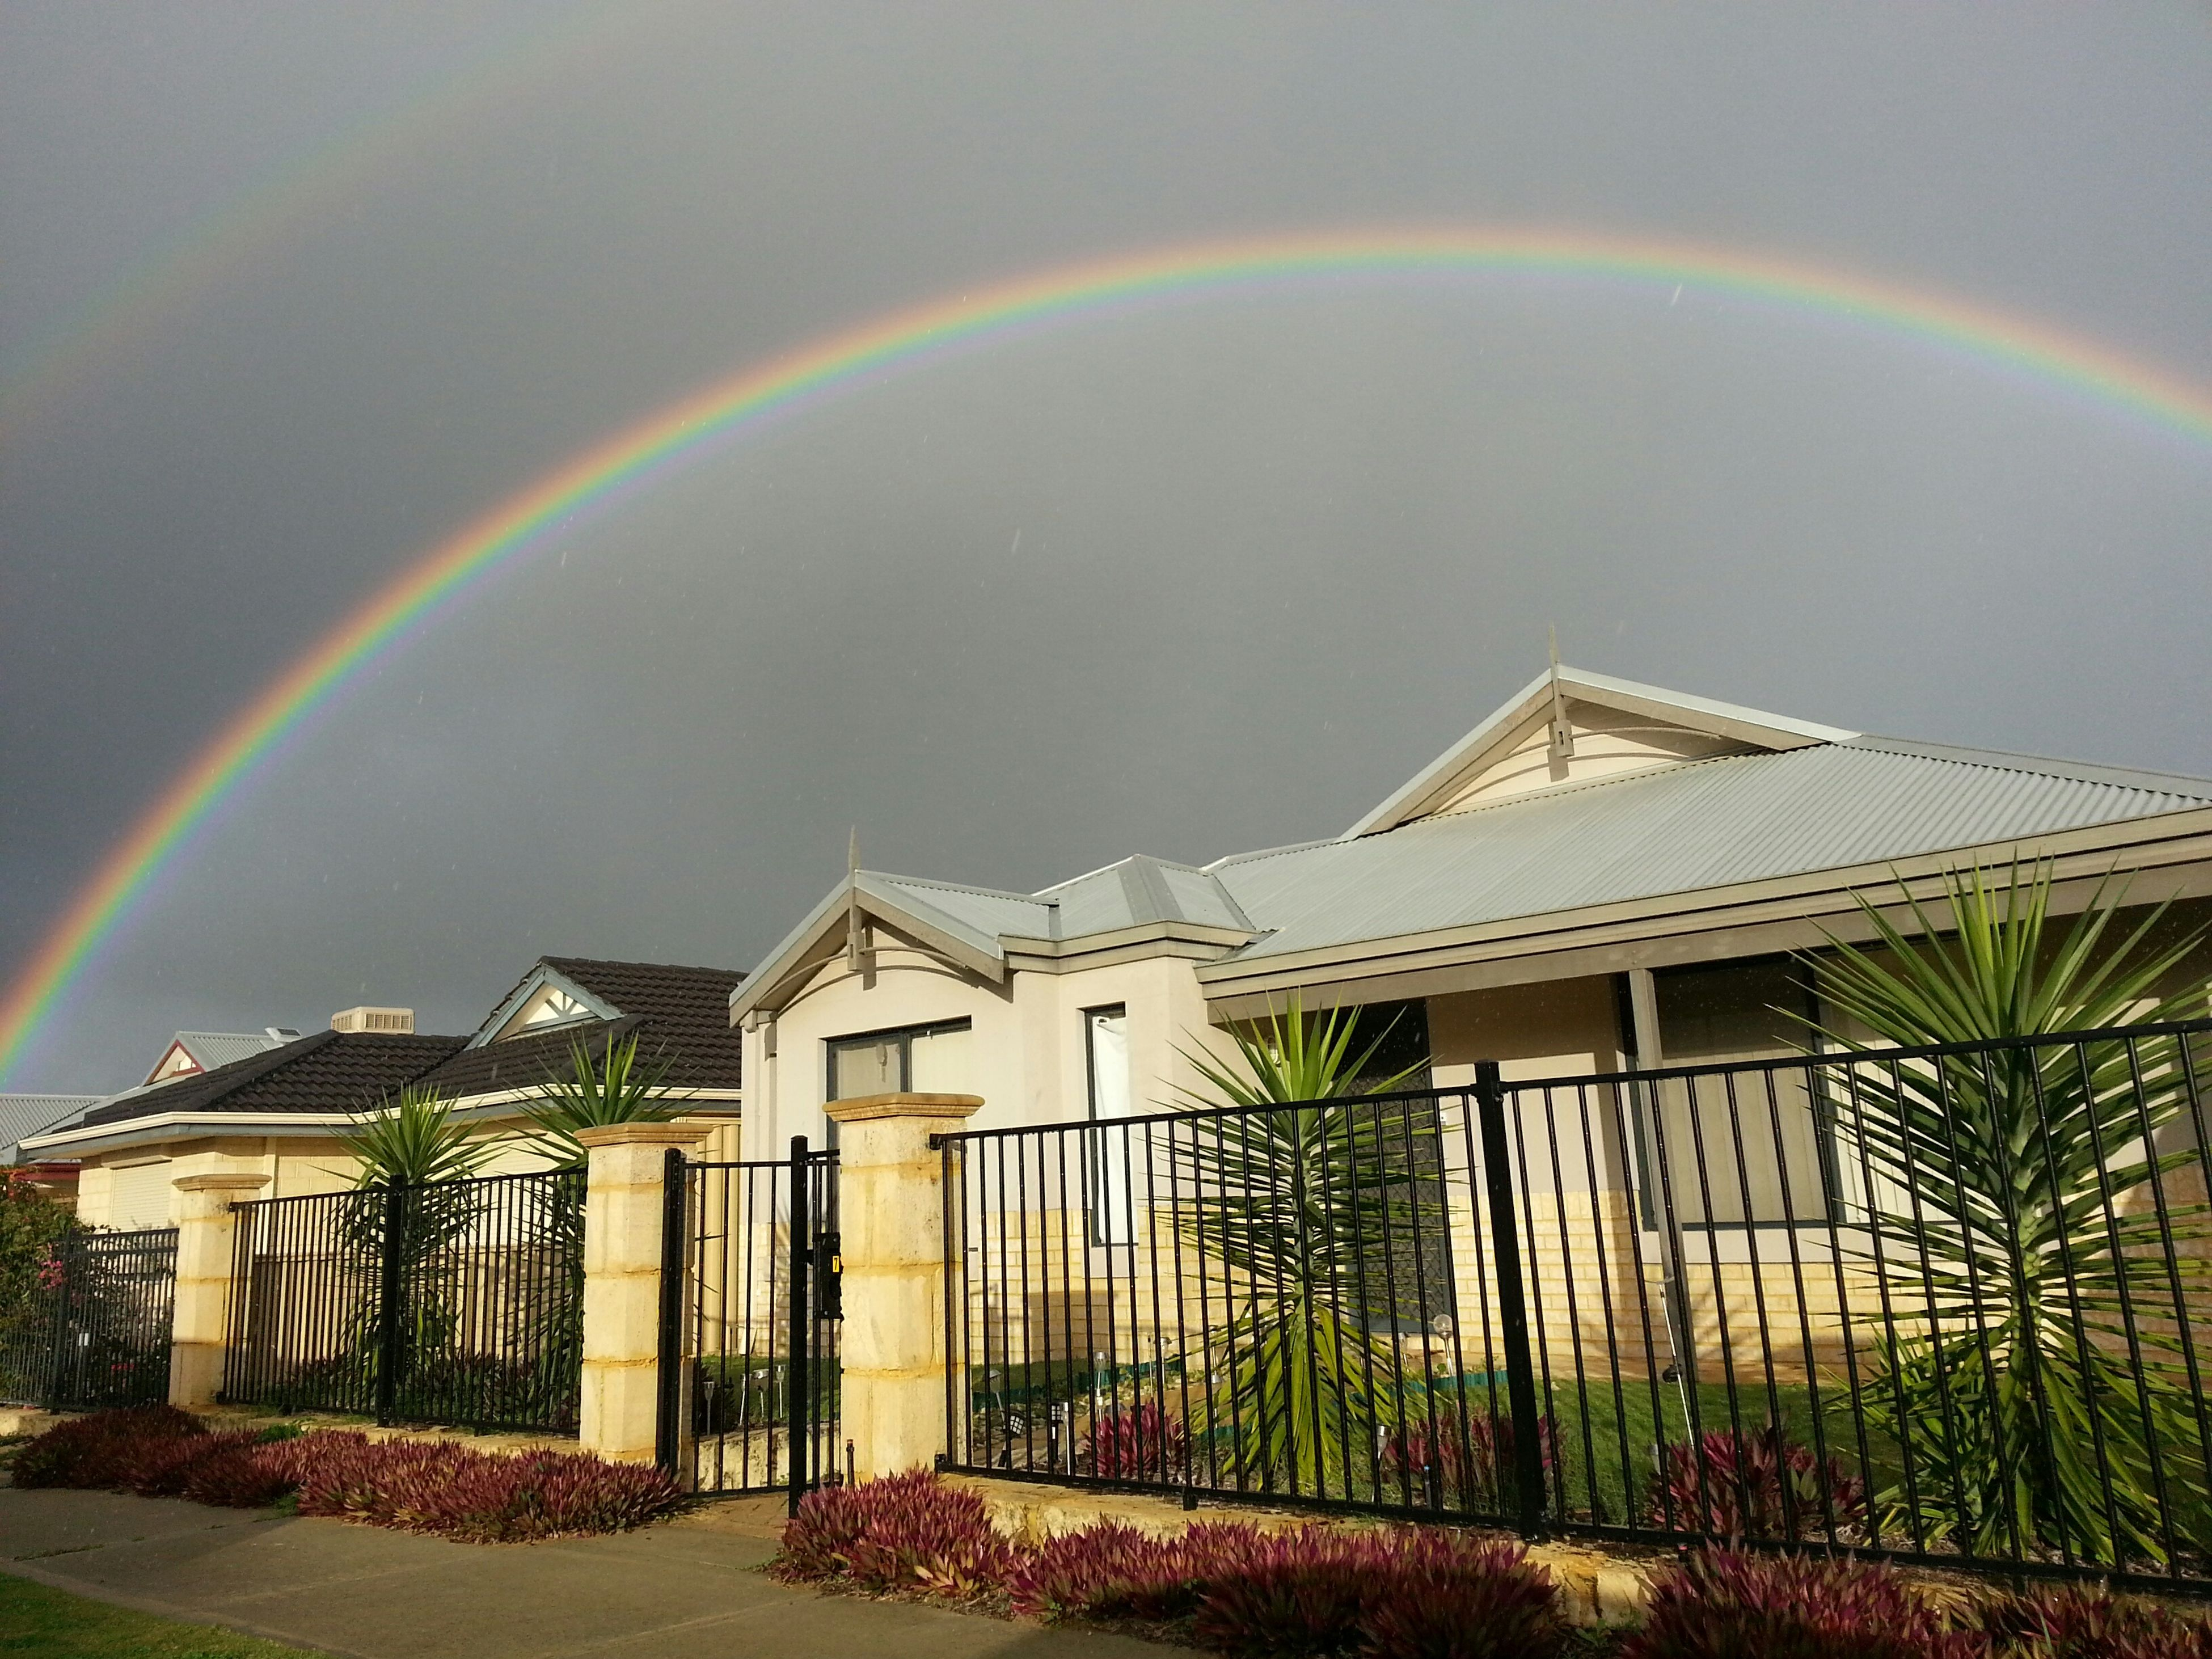 architecture, built structure, building exterior, house, sky, rainbow, residential structure, residential building, railing, multi colored, cloud - sky, outdoors, fence, no people, nature, day, building, plant, roof, cloud